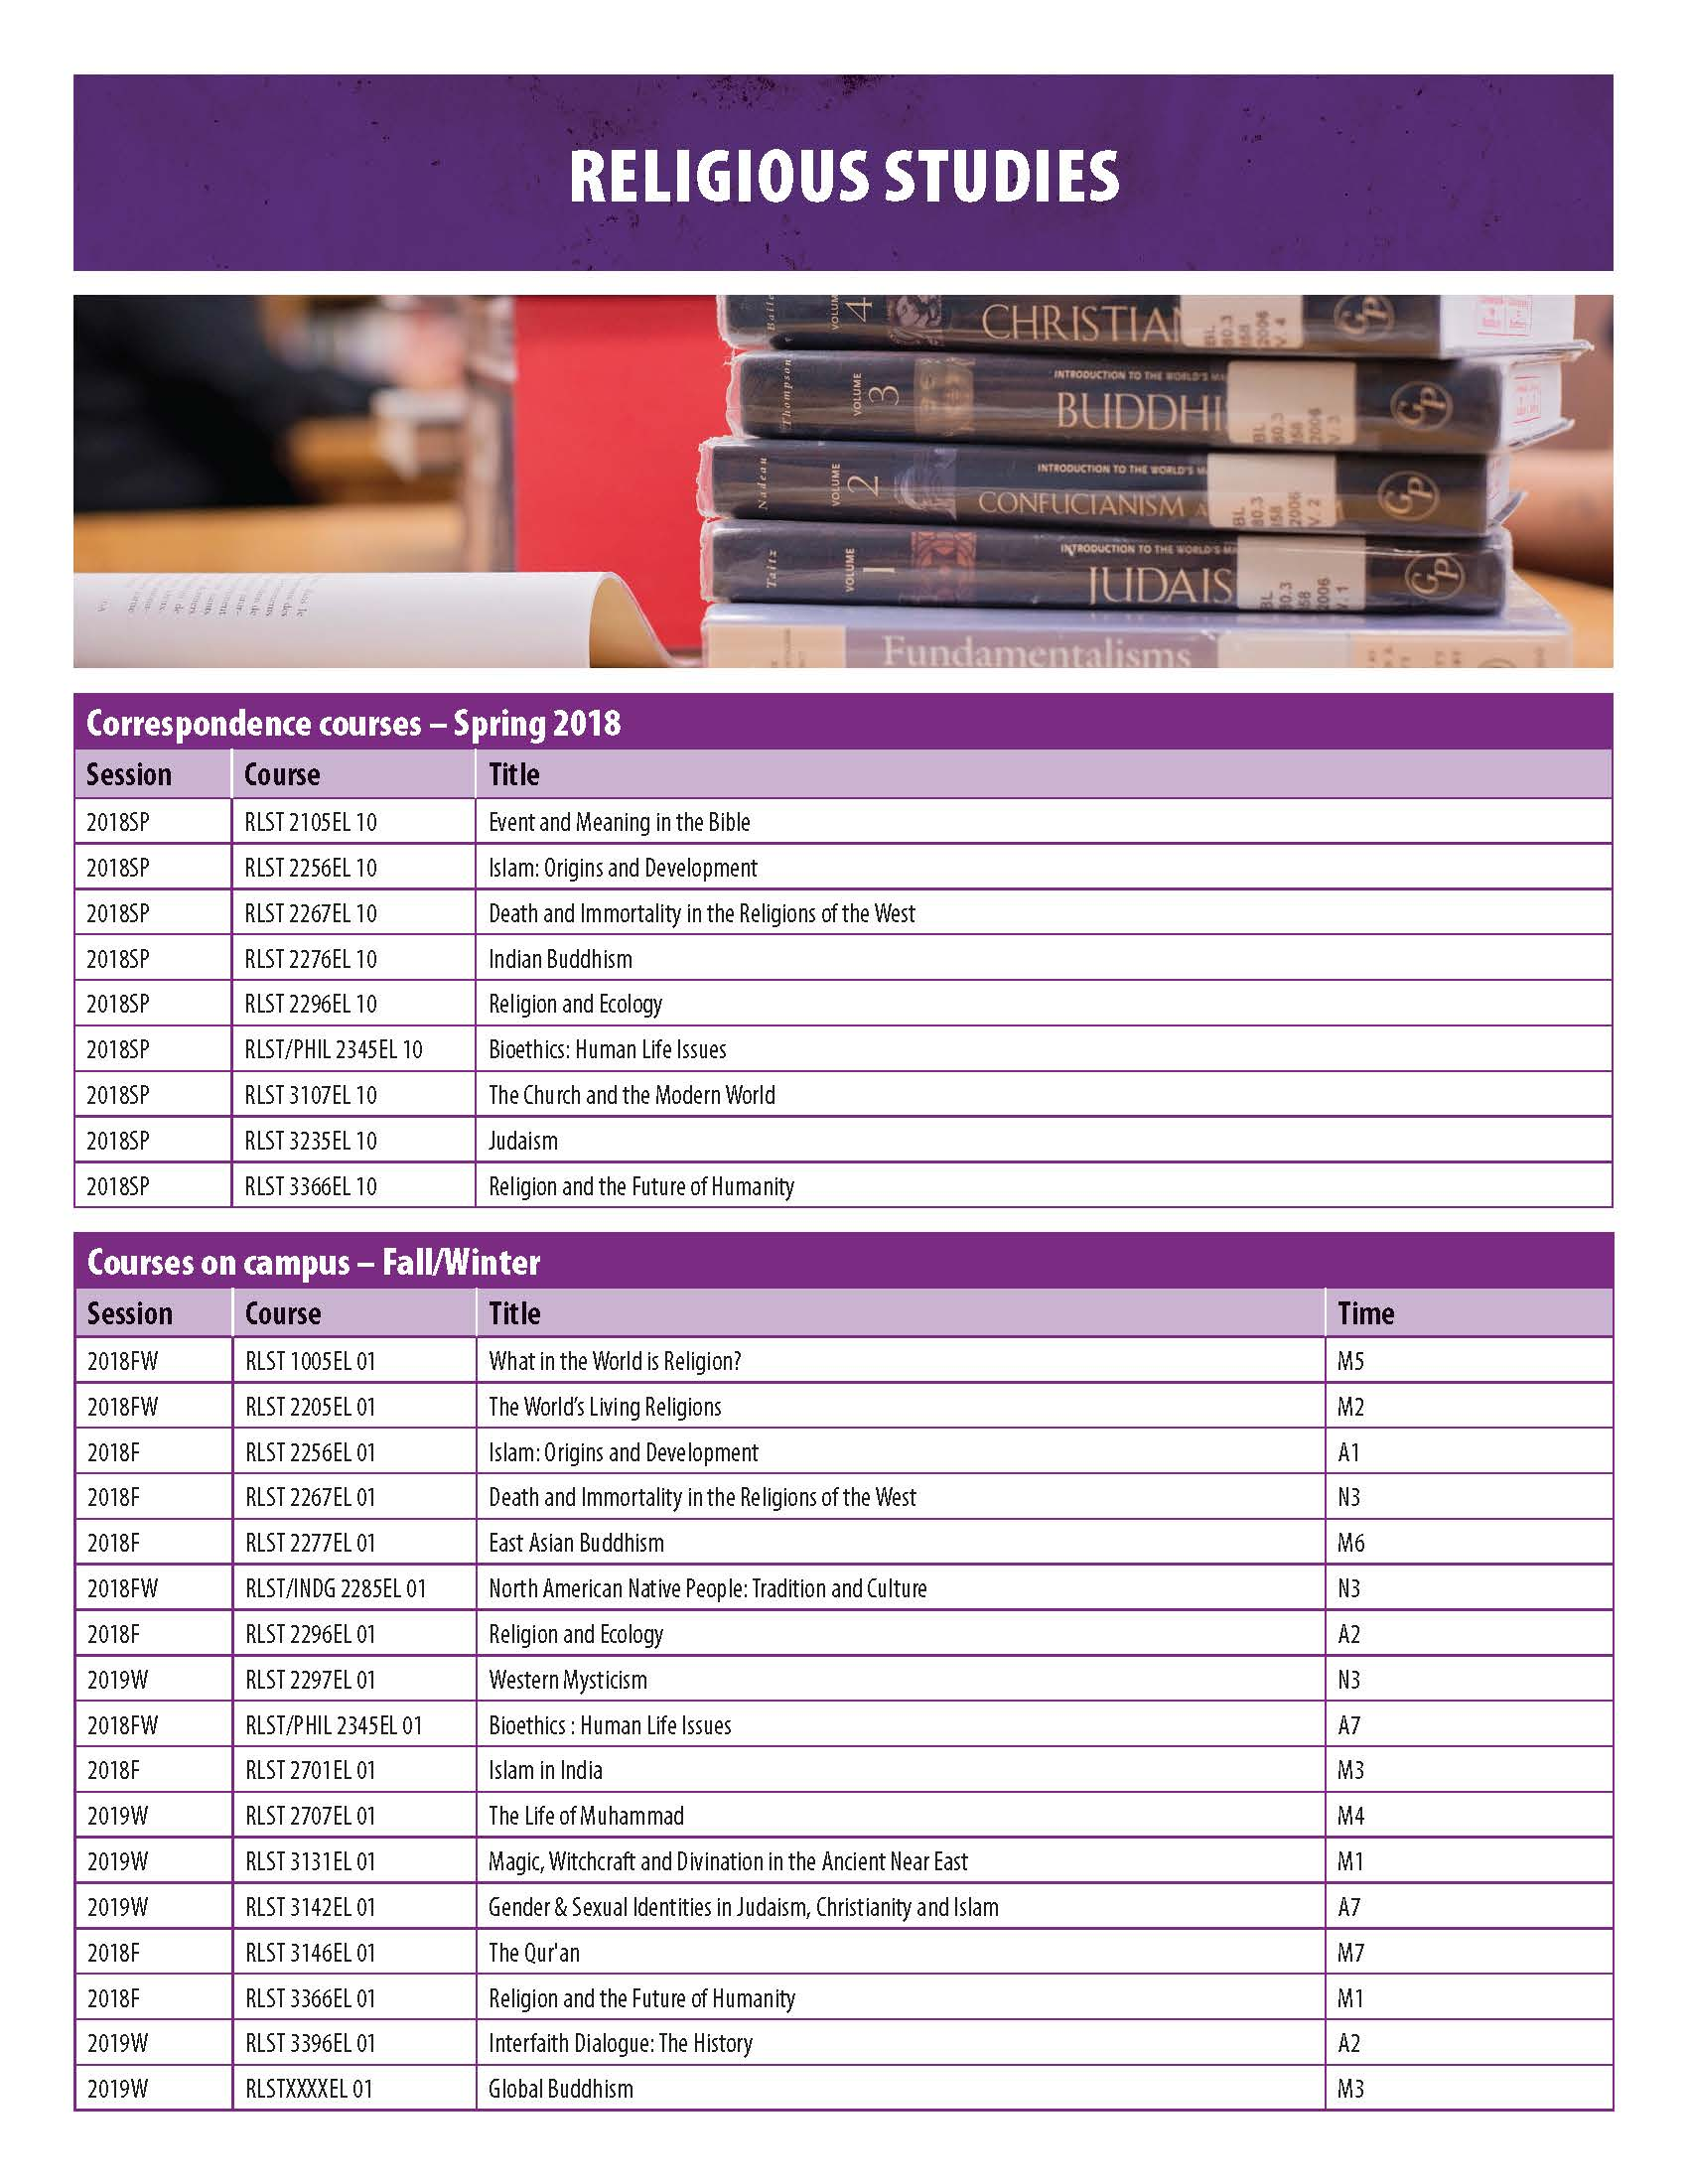 US CourseTimetable 2018 Page 09